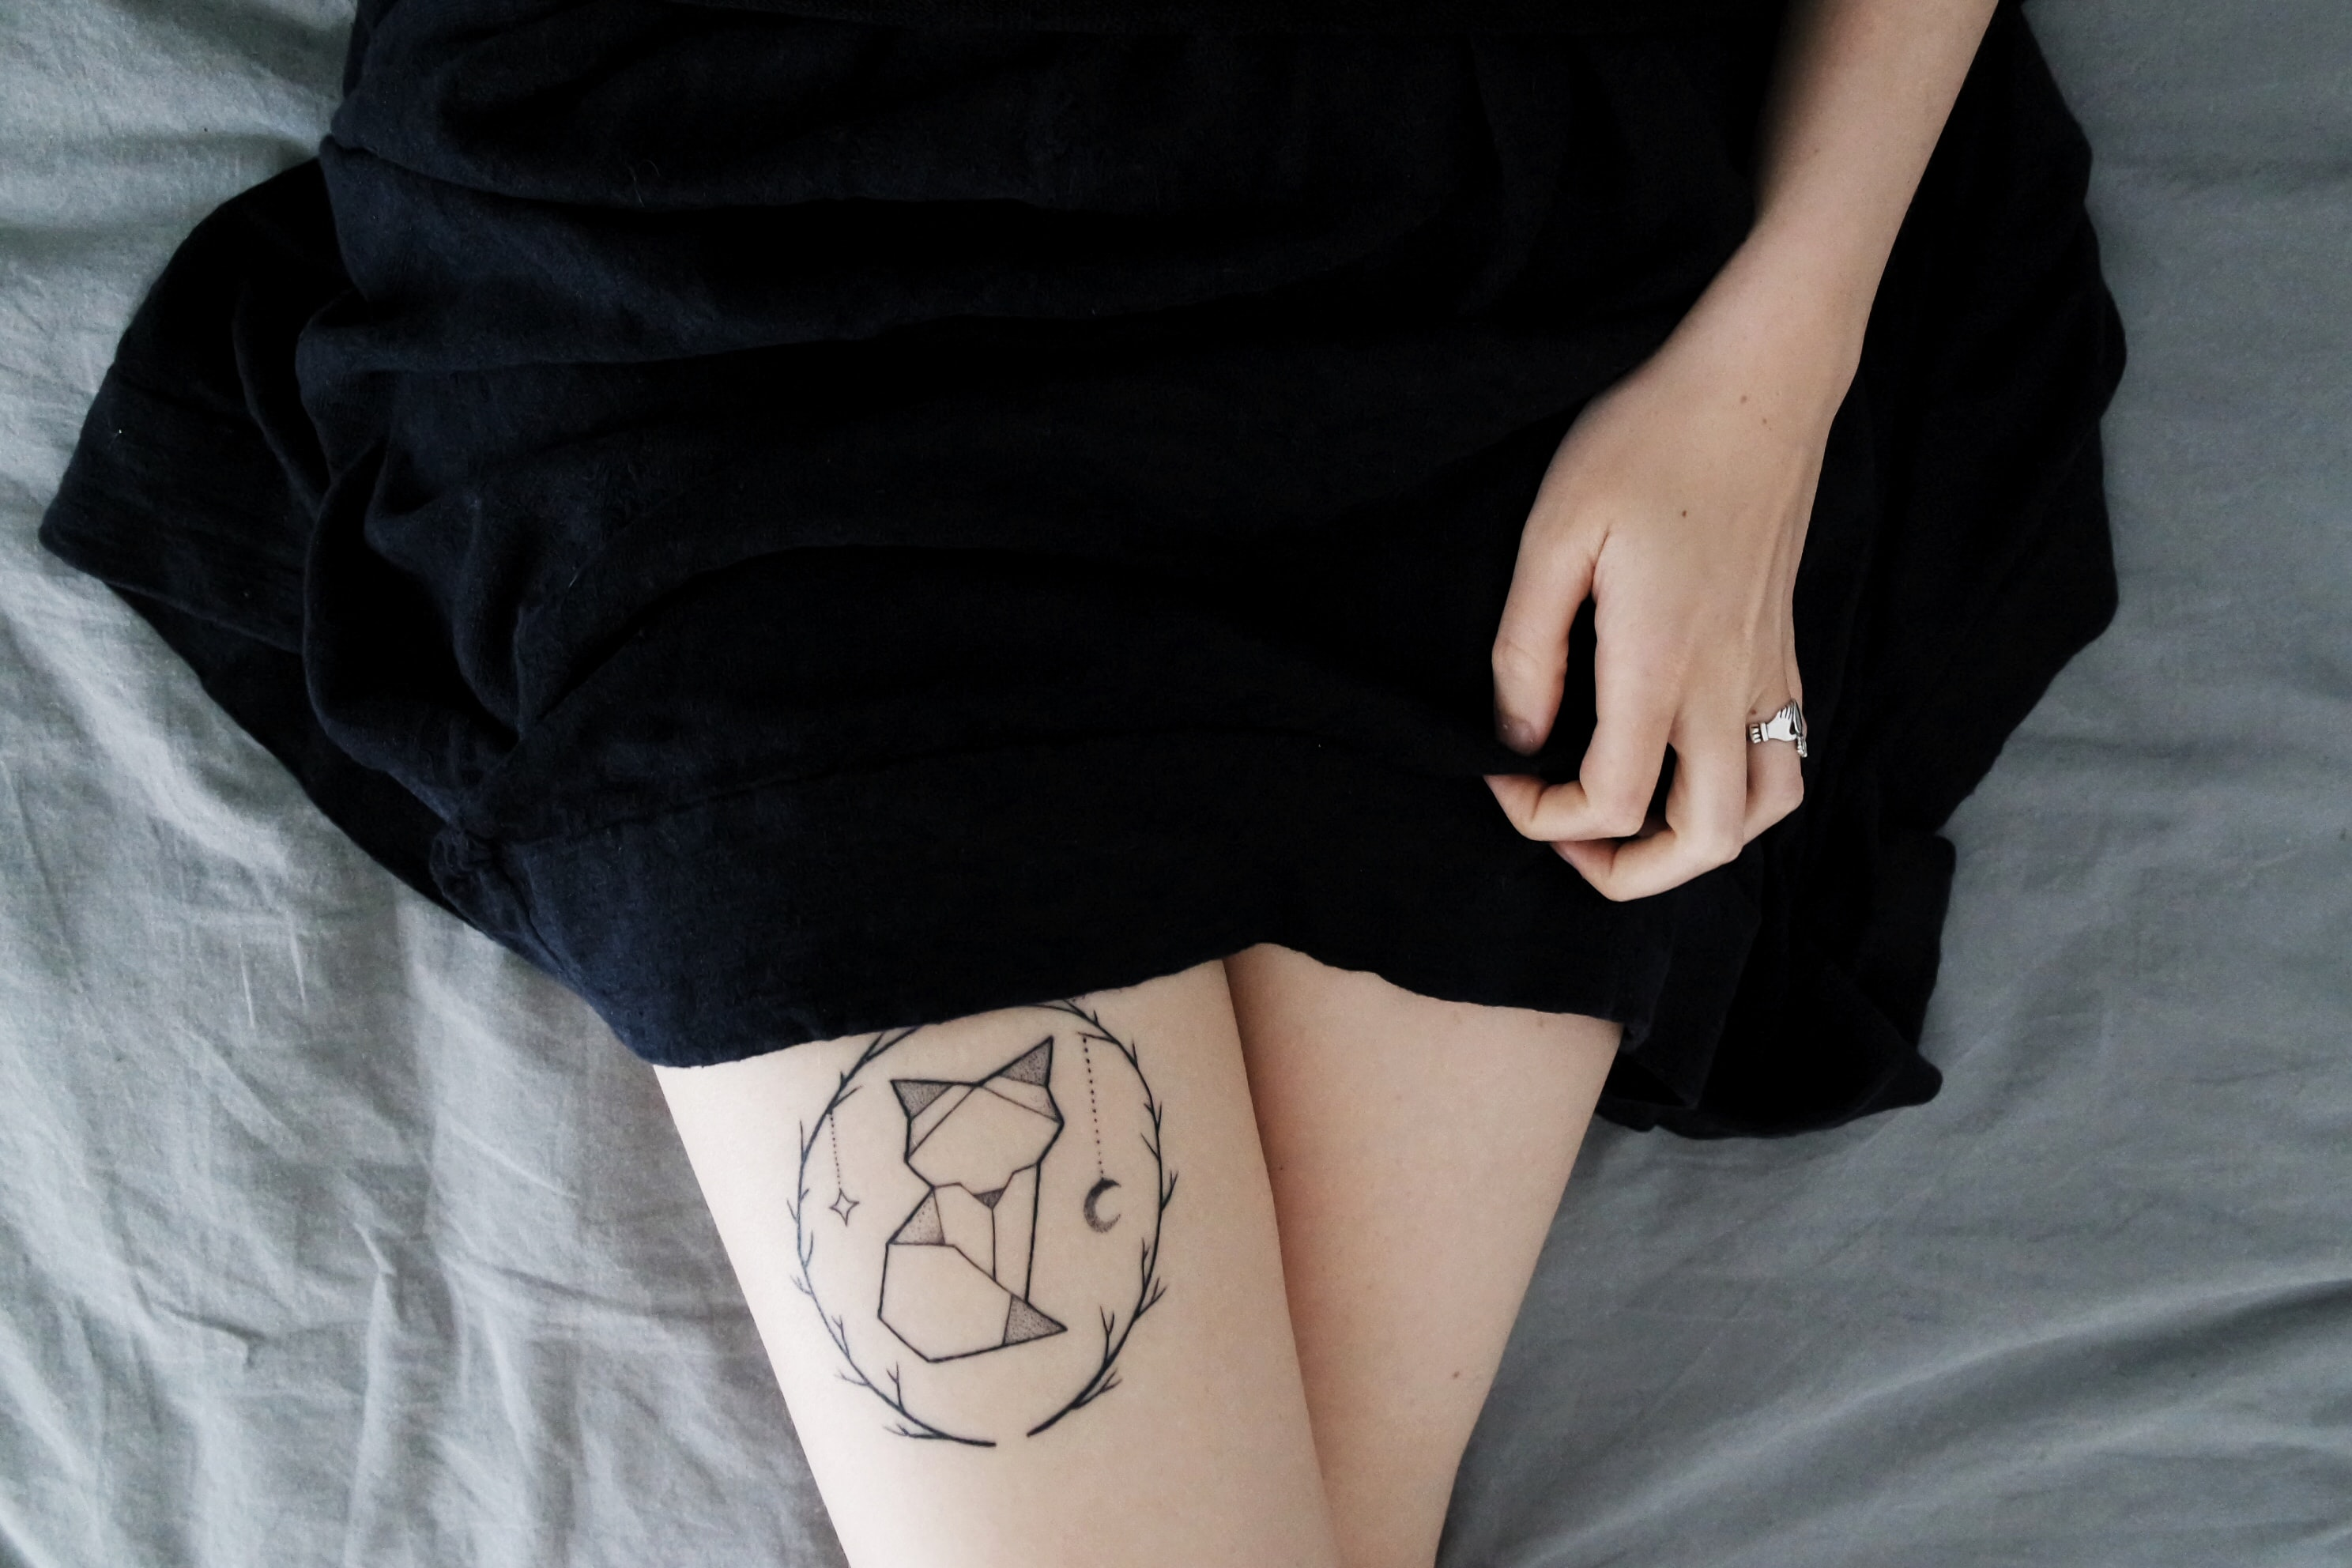 woman lying on bed sowing cat dreamcatcher tattoo on right leg during daytime